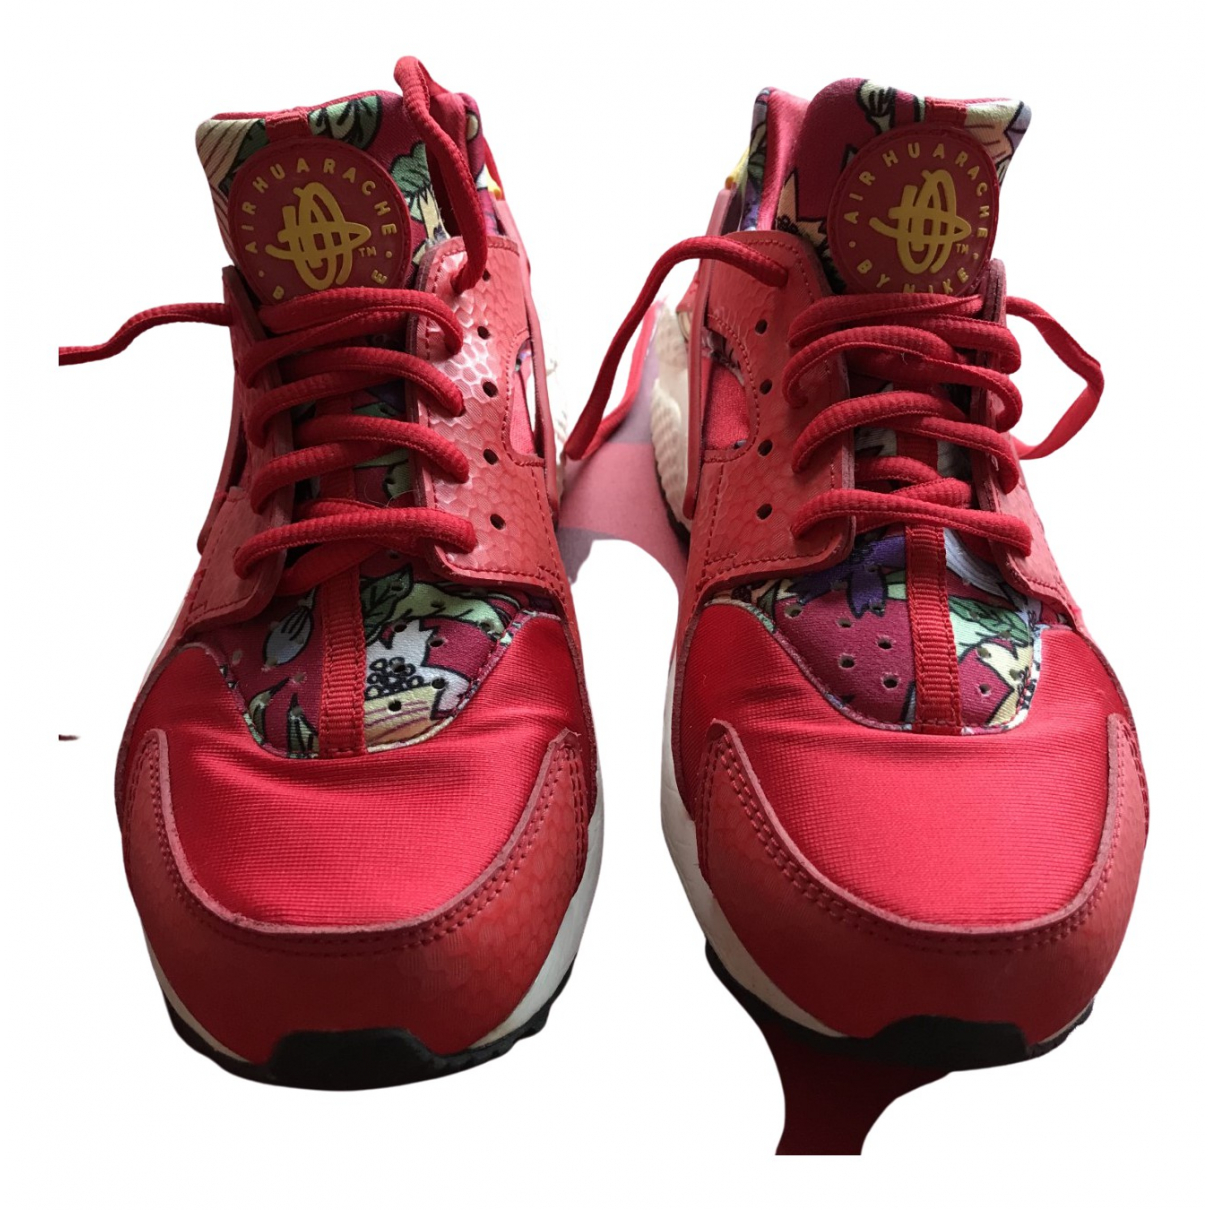 Nike Huarache Red Cloth Trainers for Women 38.5 EU